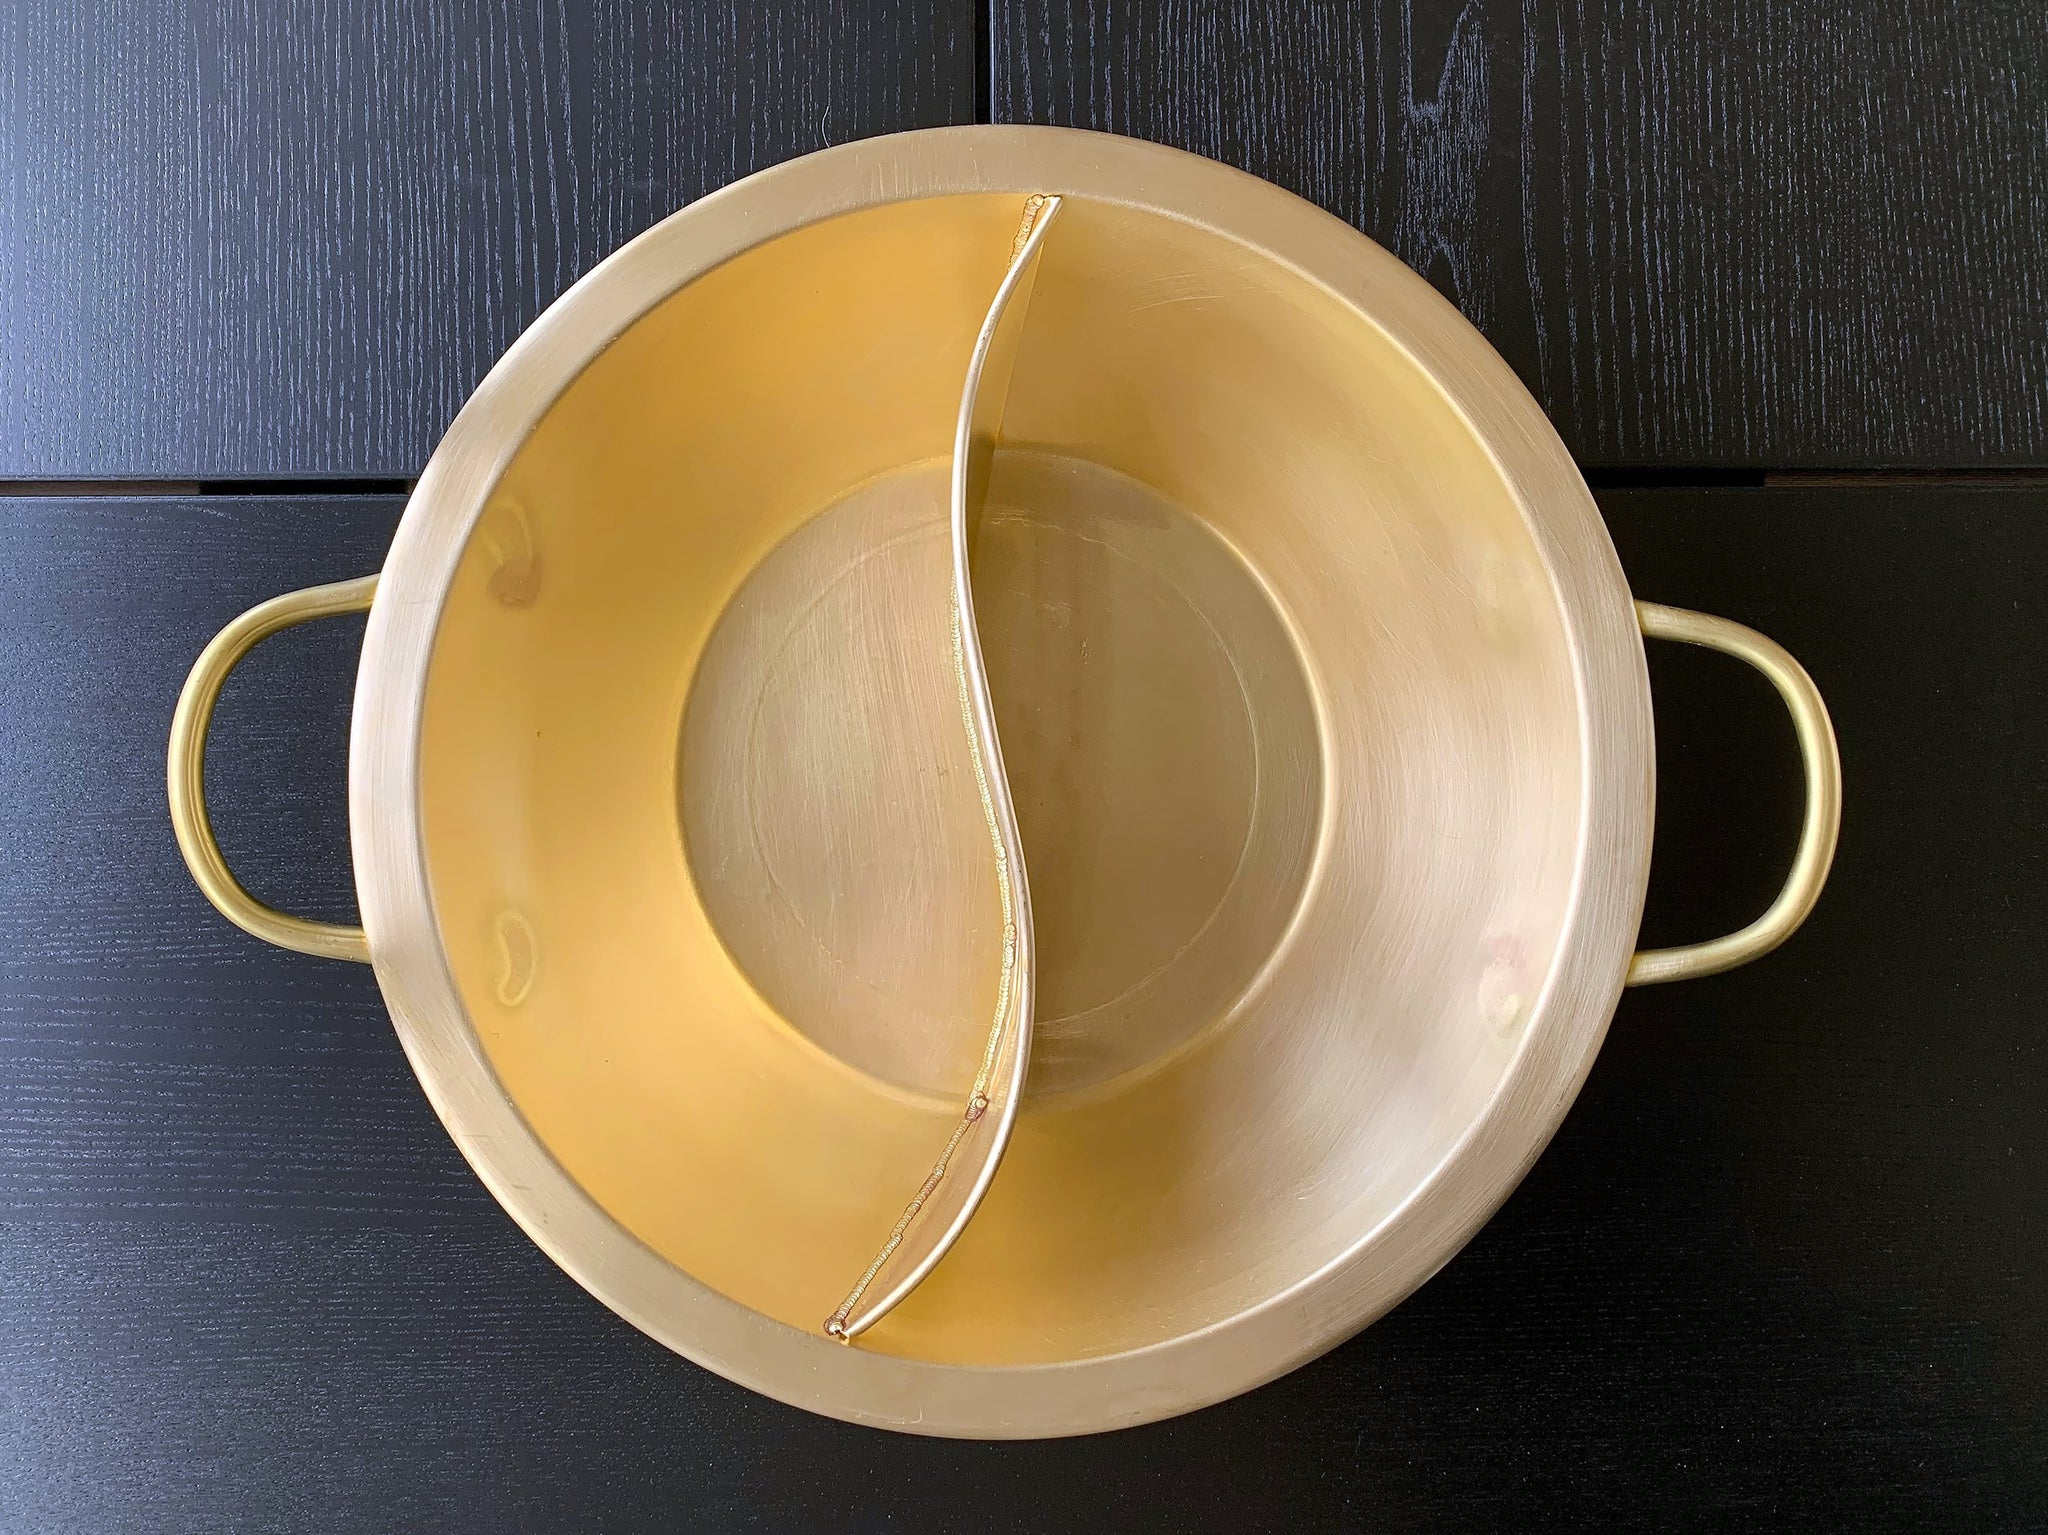 Yin-Yang Hot Pot (Handmade Brass) for International